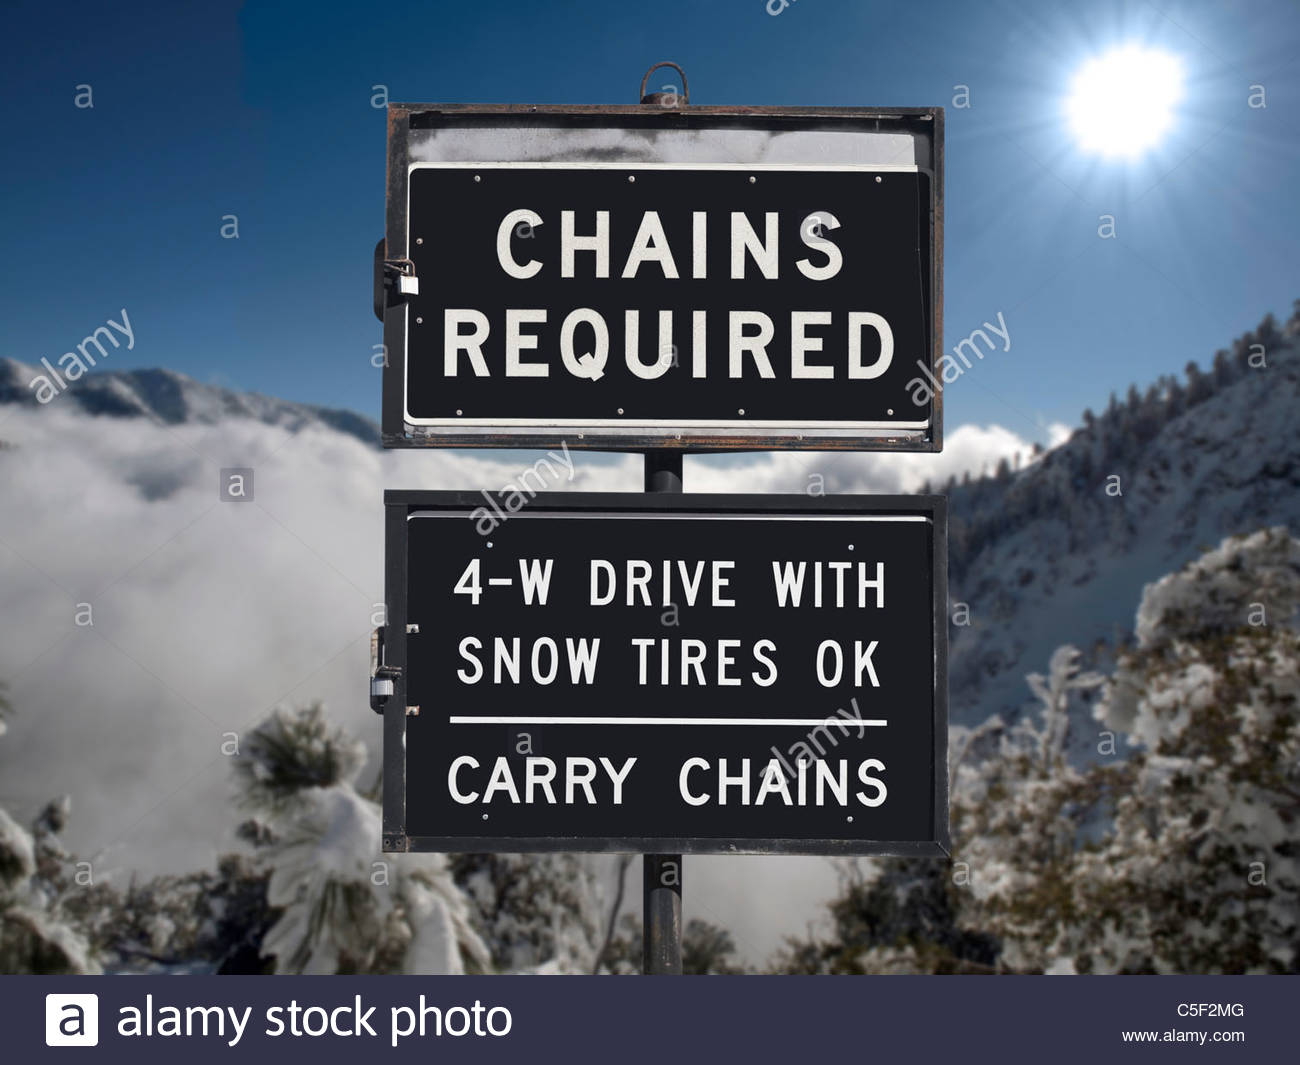 Chains or snow tires required sign with mountain backdrop. - Stock Image